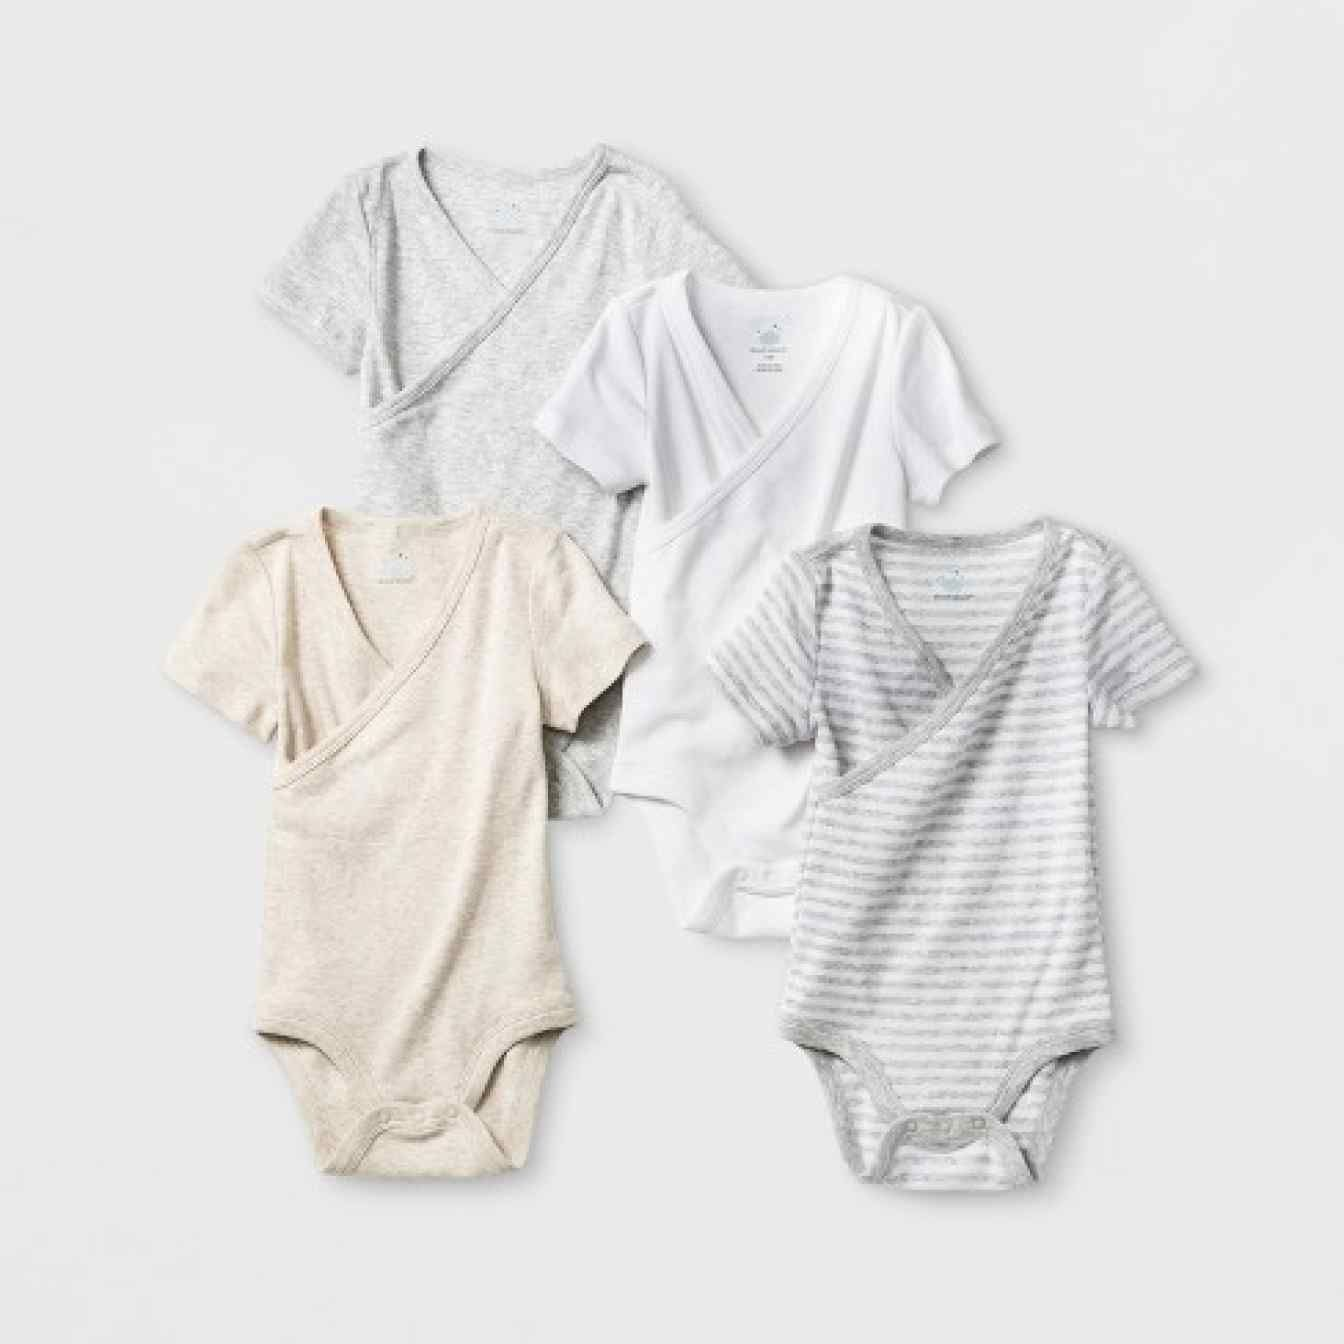 Baby Bodysuits Cloud Island 4 Pack Short Sleeve One Piece 6-9 Months /& 12 Months